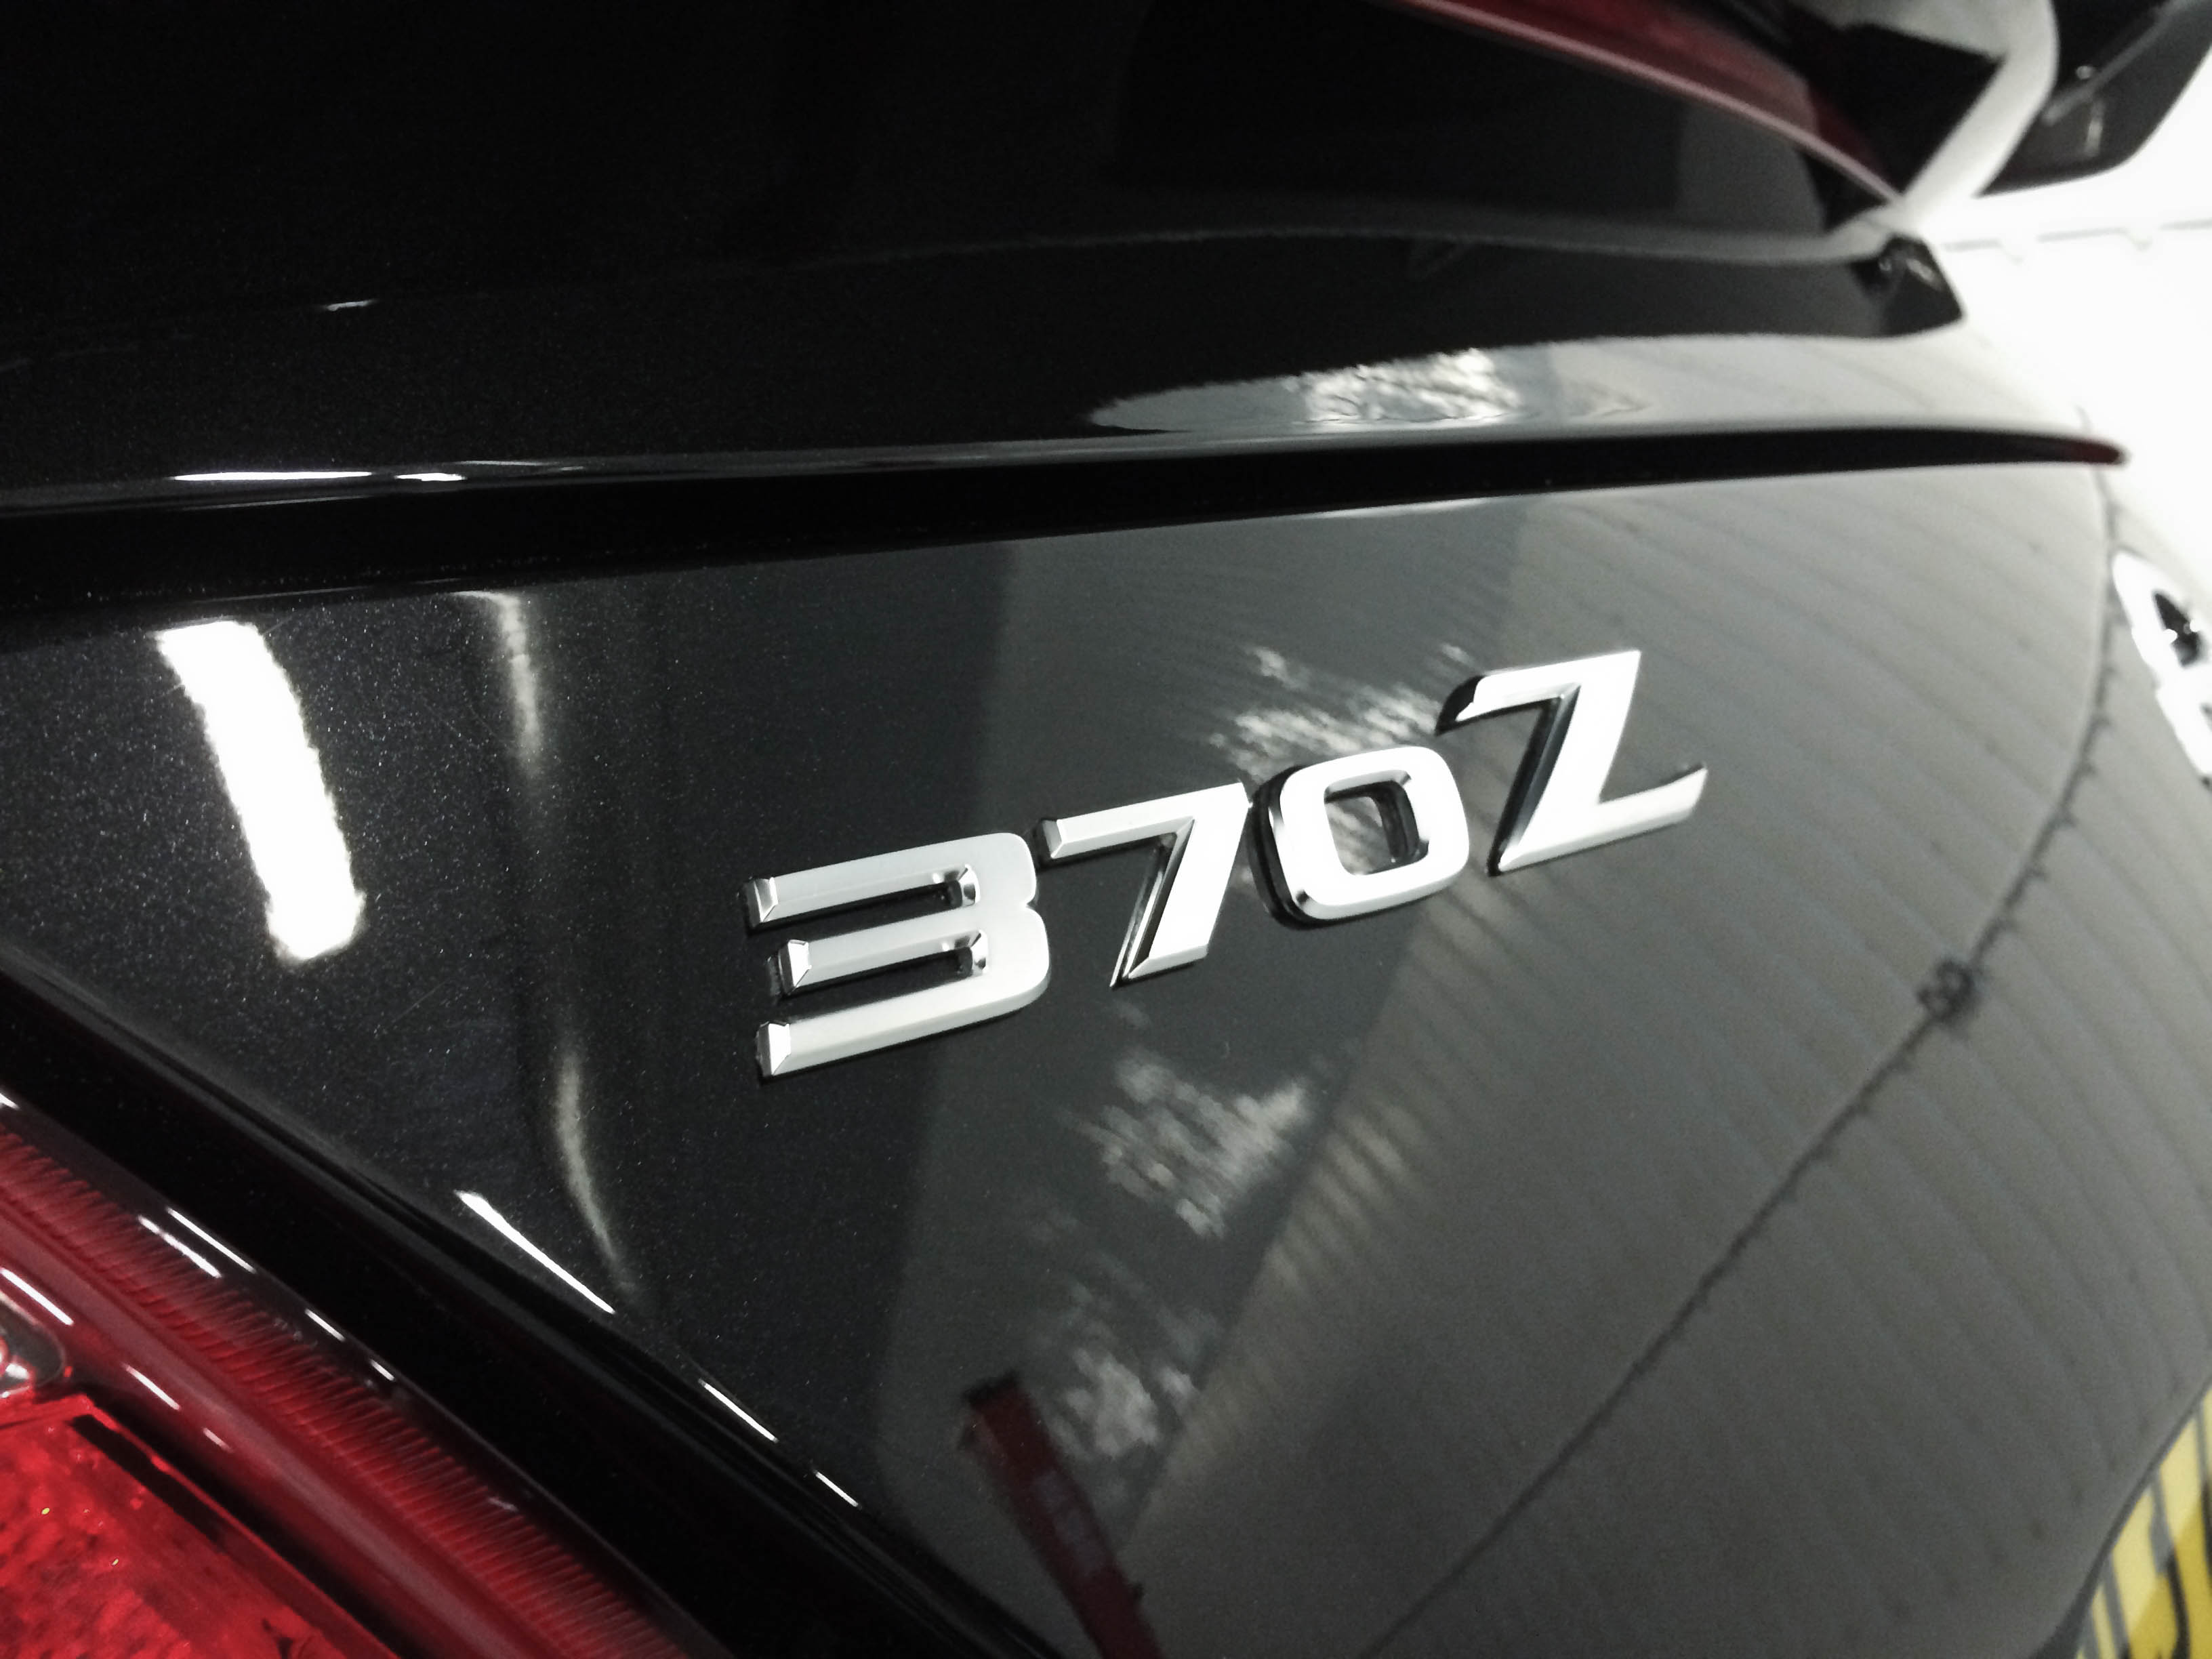 Nissan 370z Nismo – Rear badge